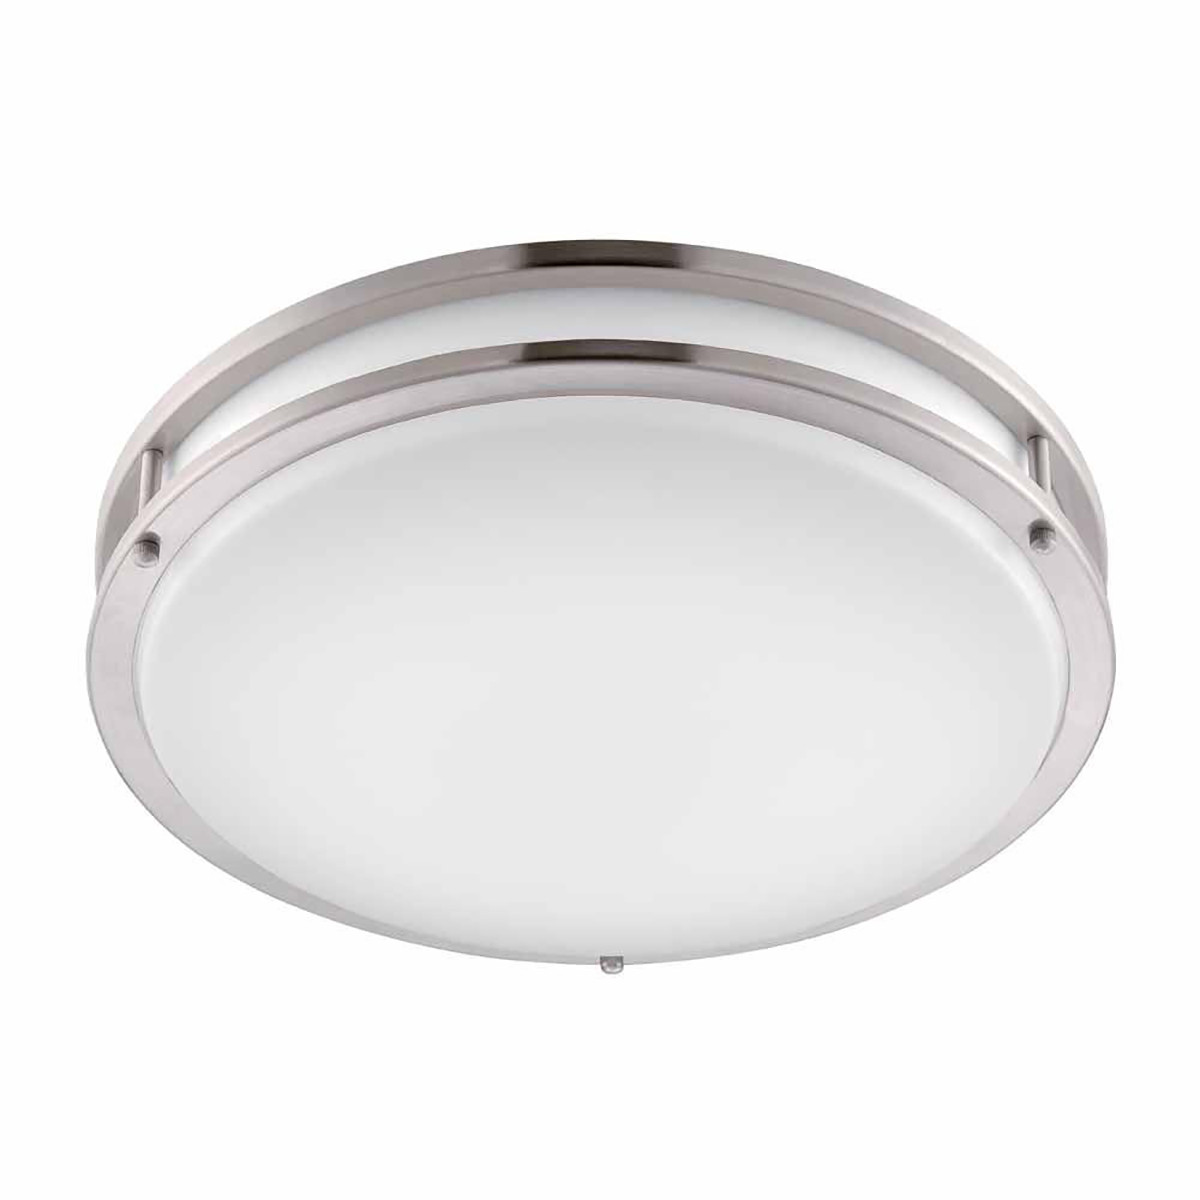 24W 16inch 80Lm/W ,80Lm/W ,Flush Mount, Round Nickel Finish with Acrylic shade ,Dimmable Triple CCTS Changeable regularly By RF control Ceiling Light Fixture for Home Lighting